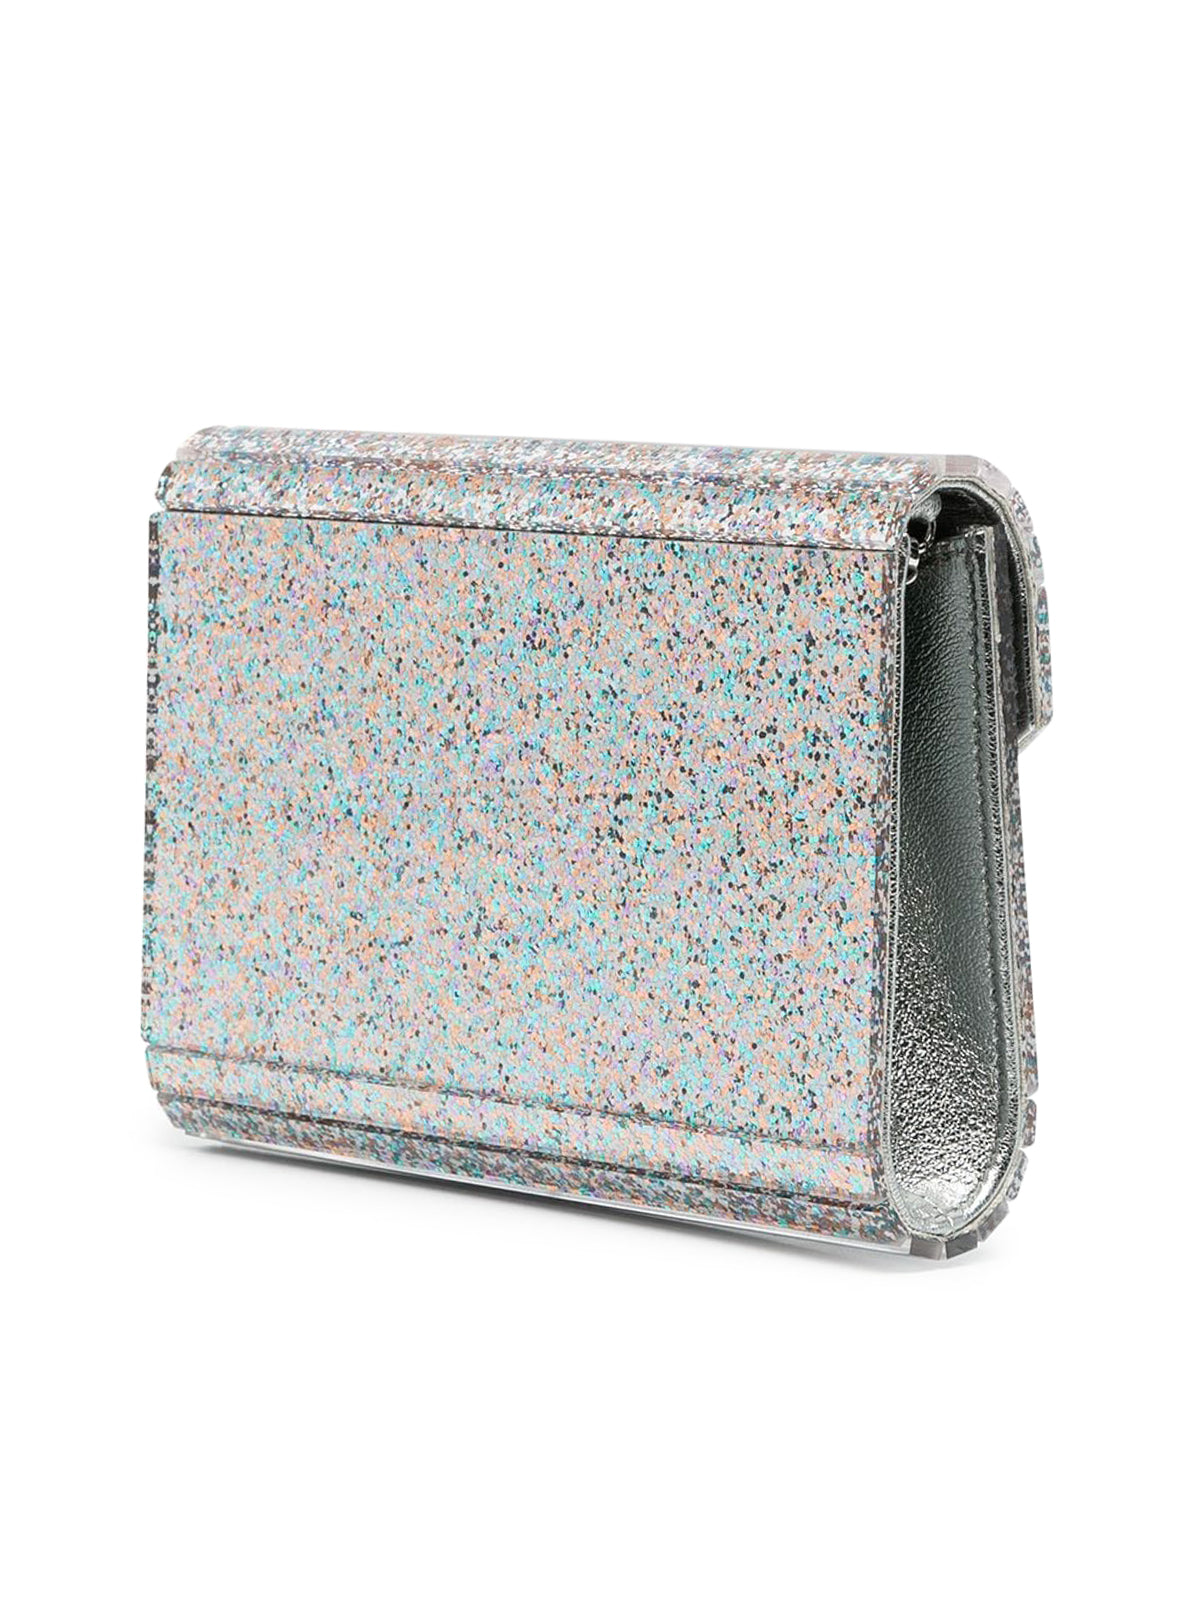 Candy crossbody bag